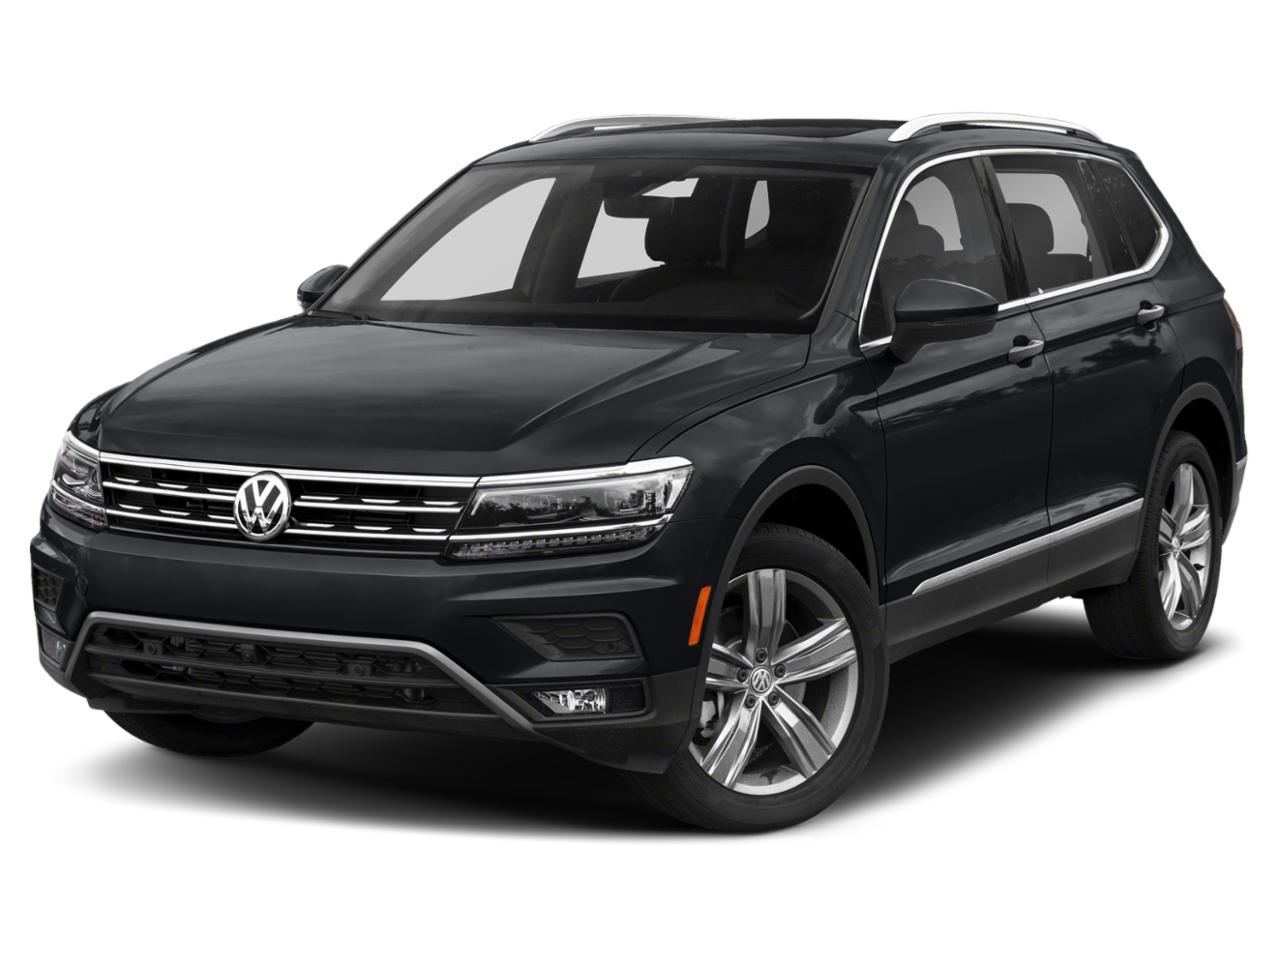 2019 Volkswagen Tiguan Vehicle Photo in Baton Rouge, LA 70806